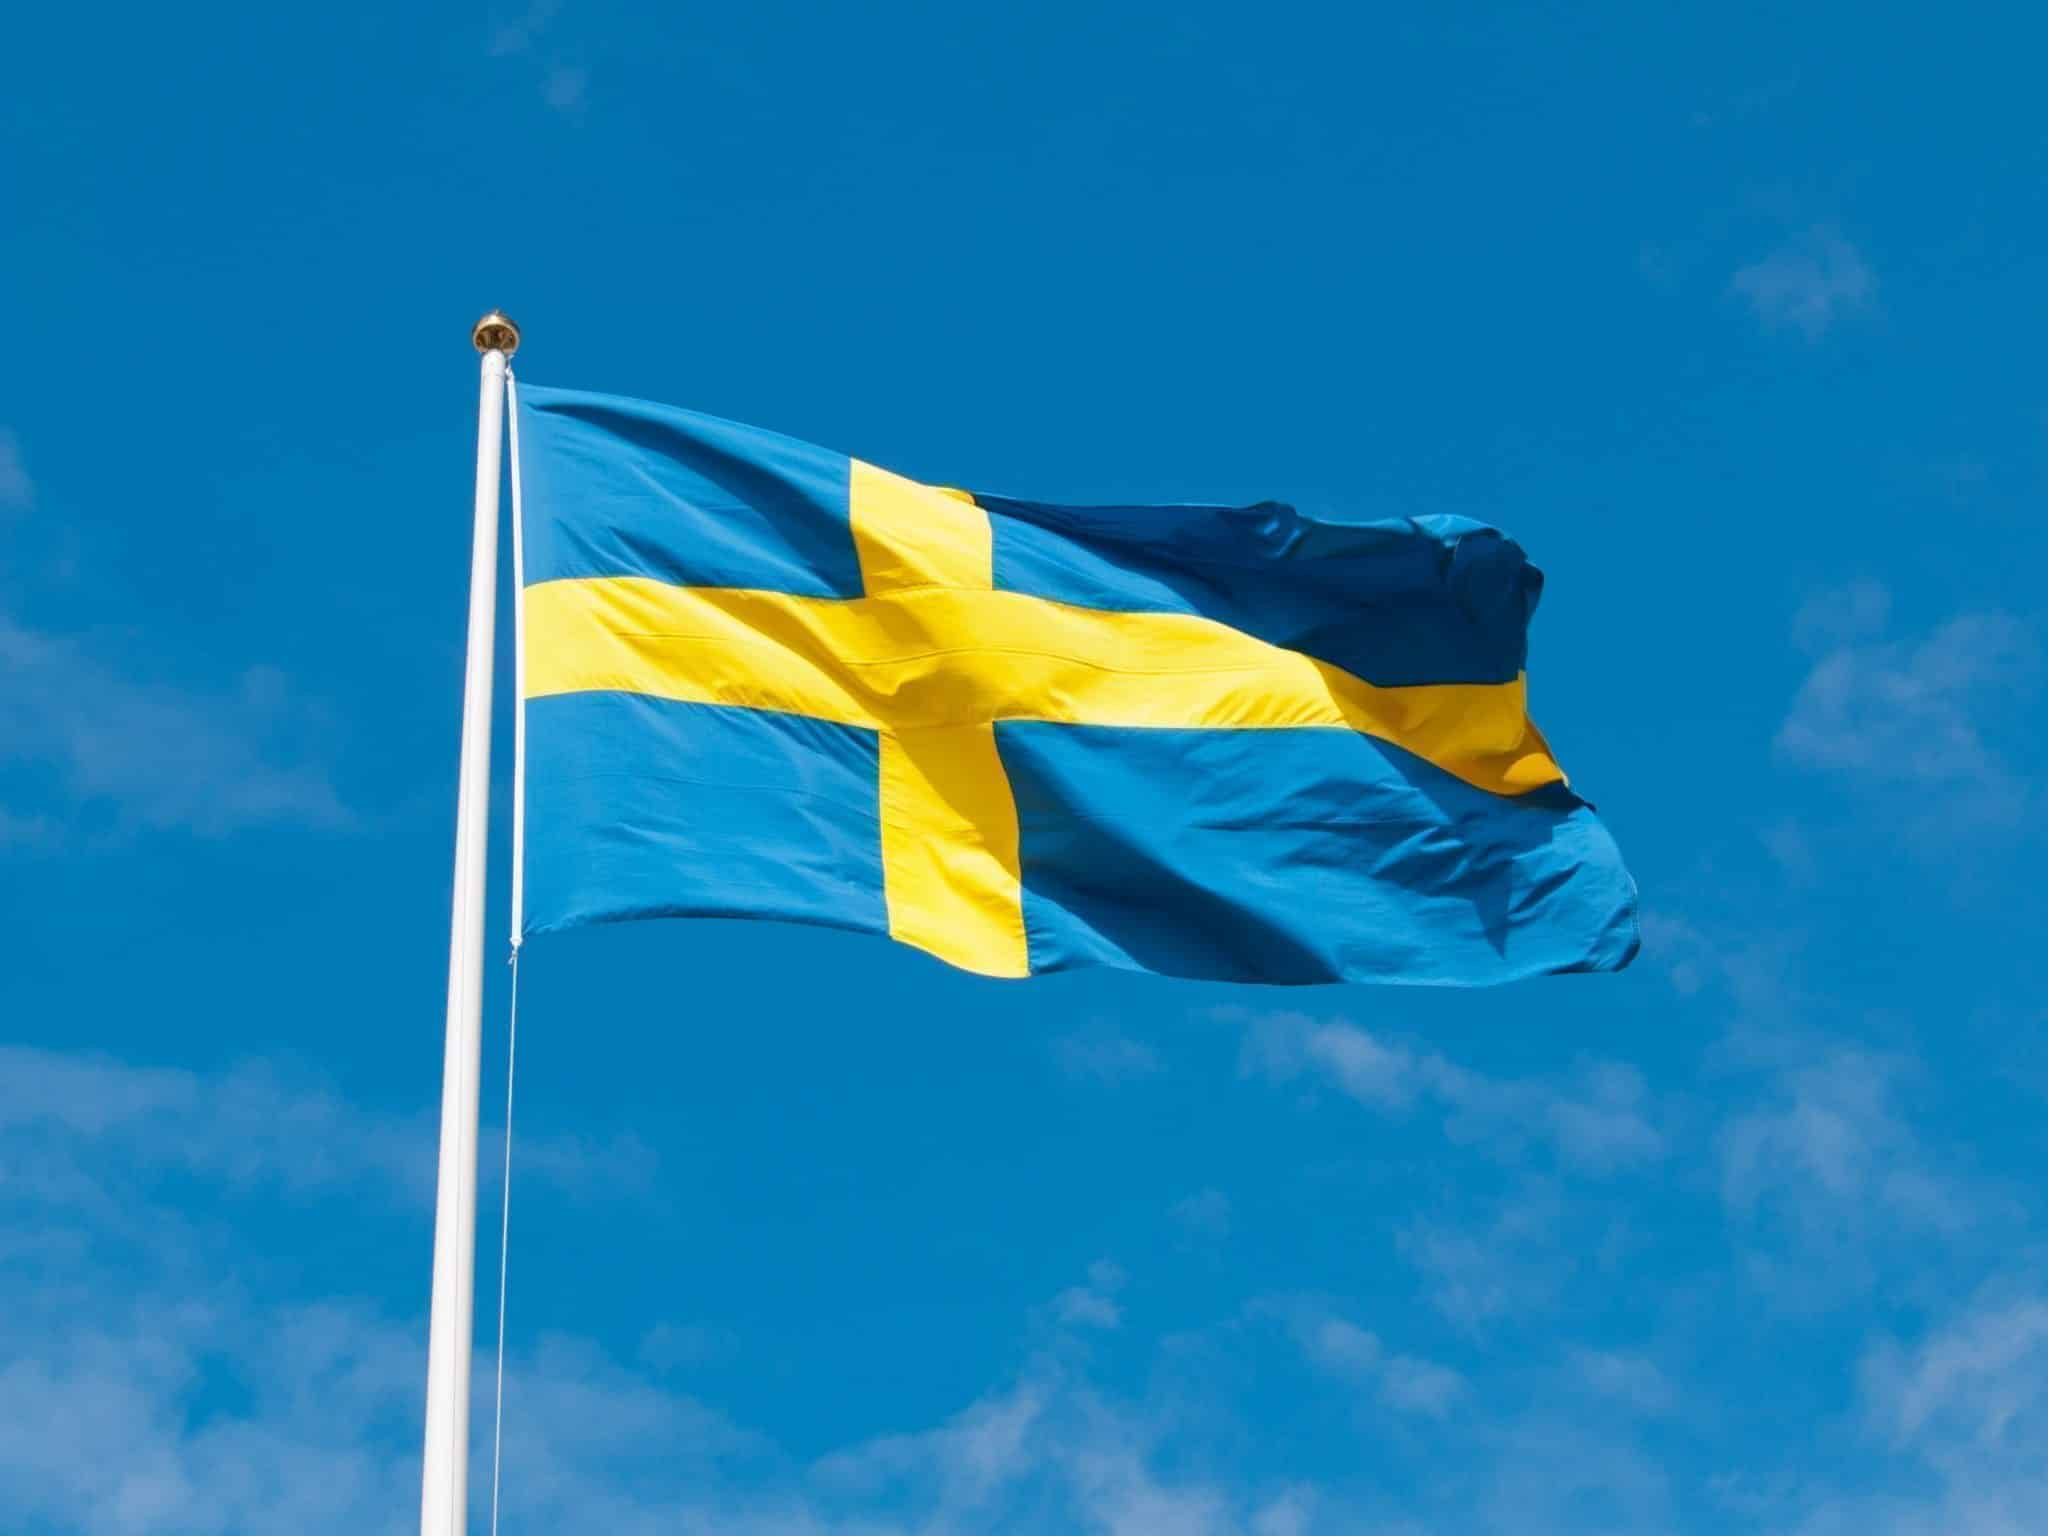 Swedish economic and political outlook at the beginning of 2019